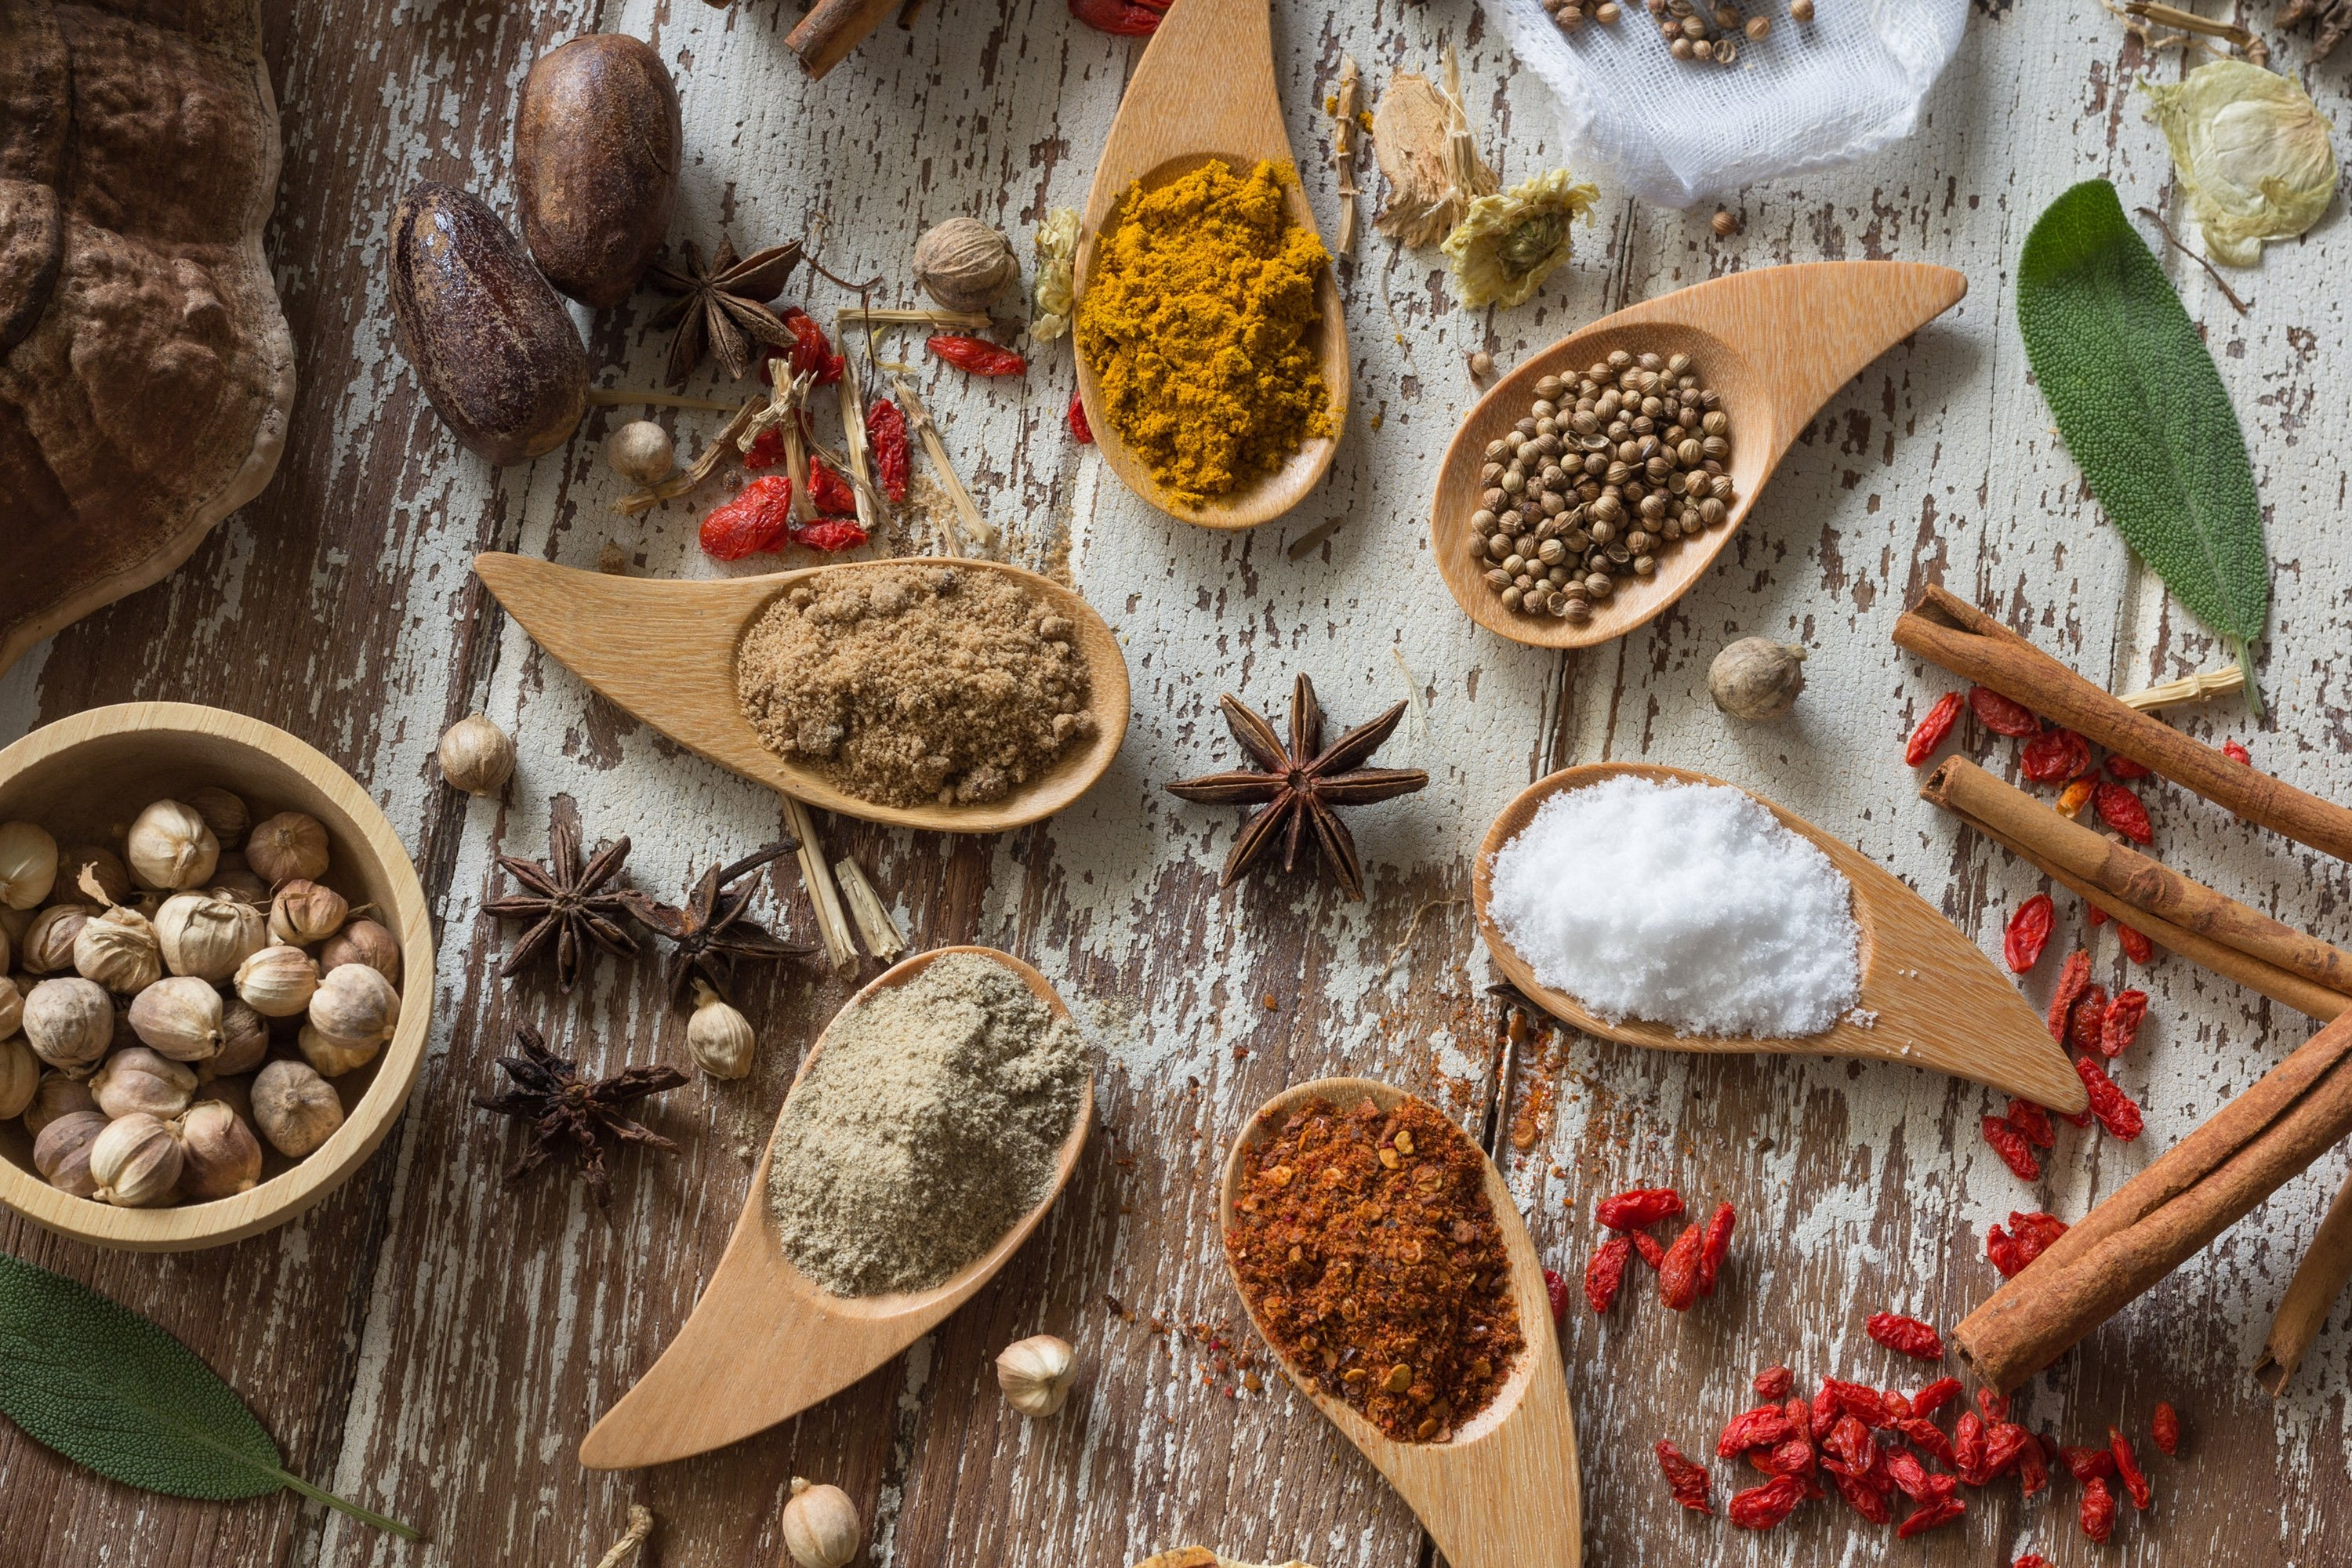 You will need spices such as nutmeg, cinnamon, cloves and many others to create an authentic taste. (Shutterstock Photo)